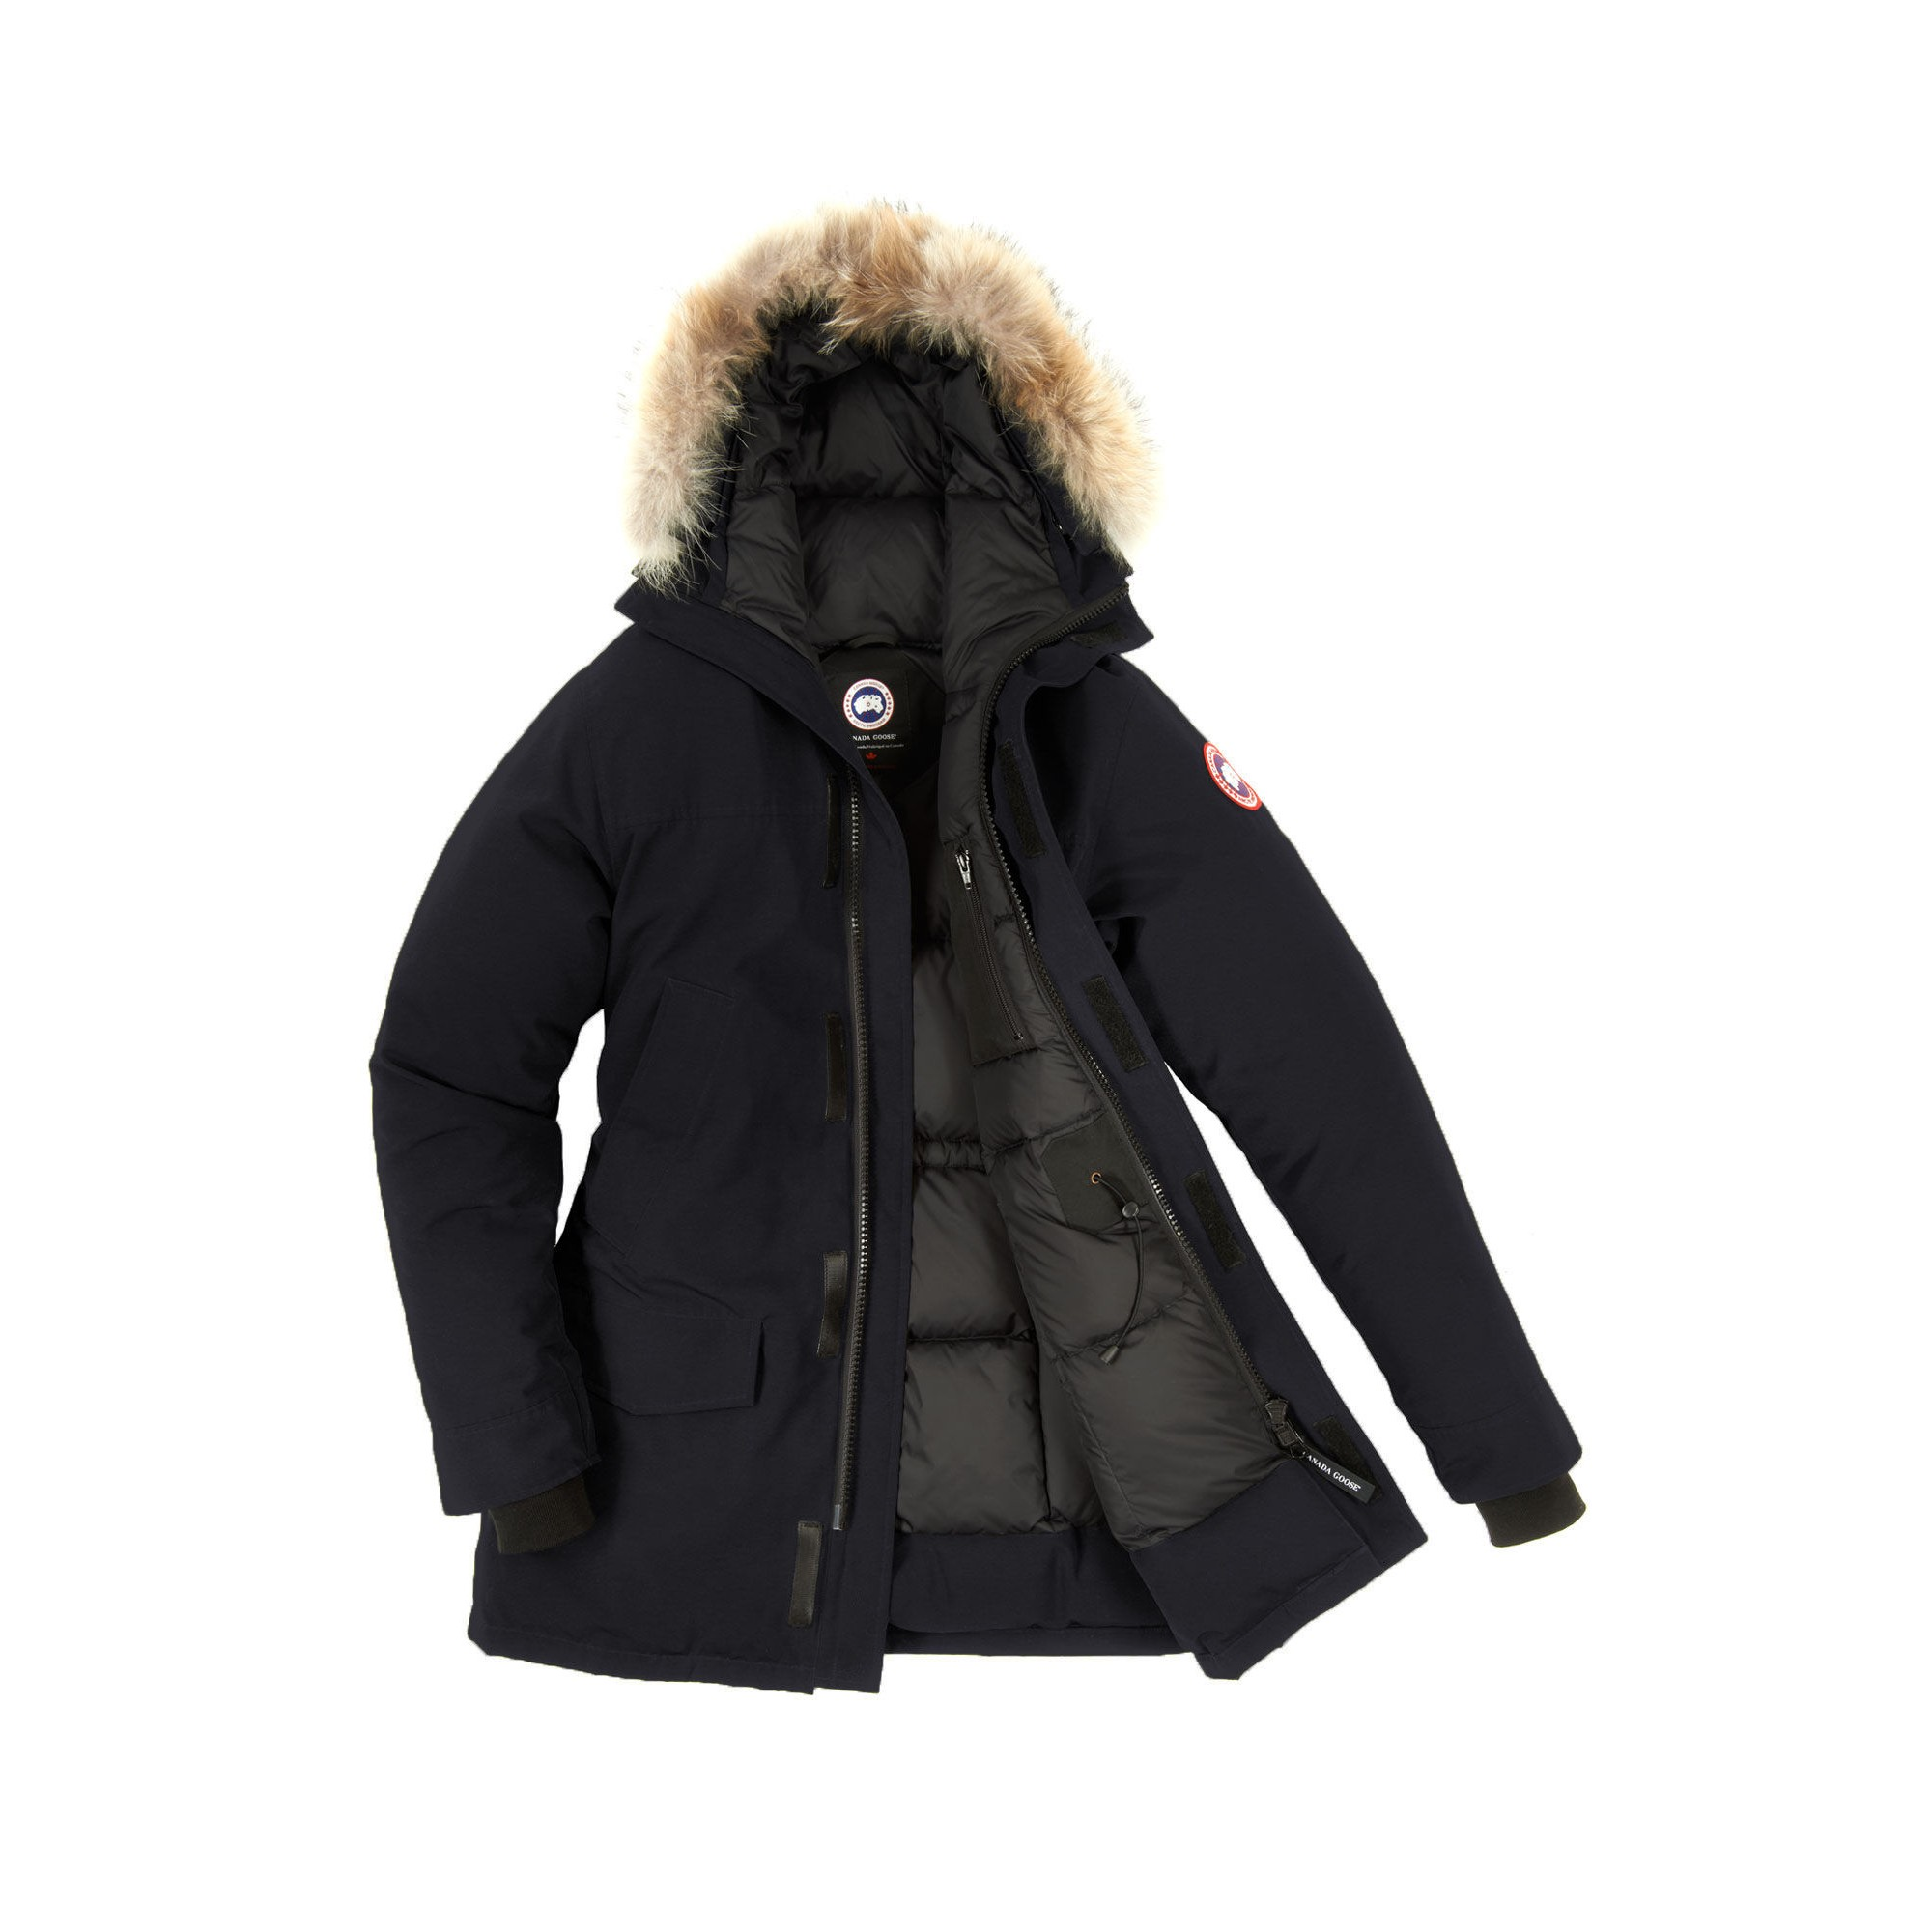 parajumpers or canada goose